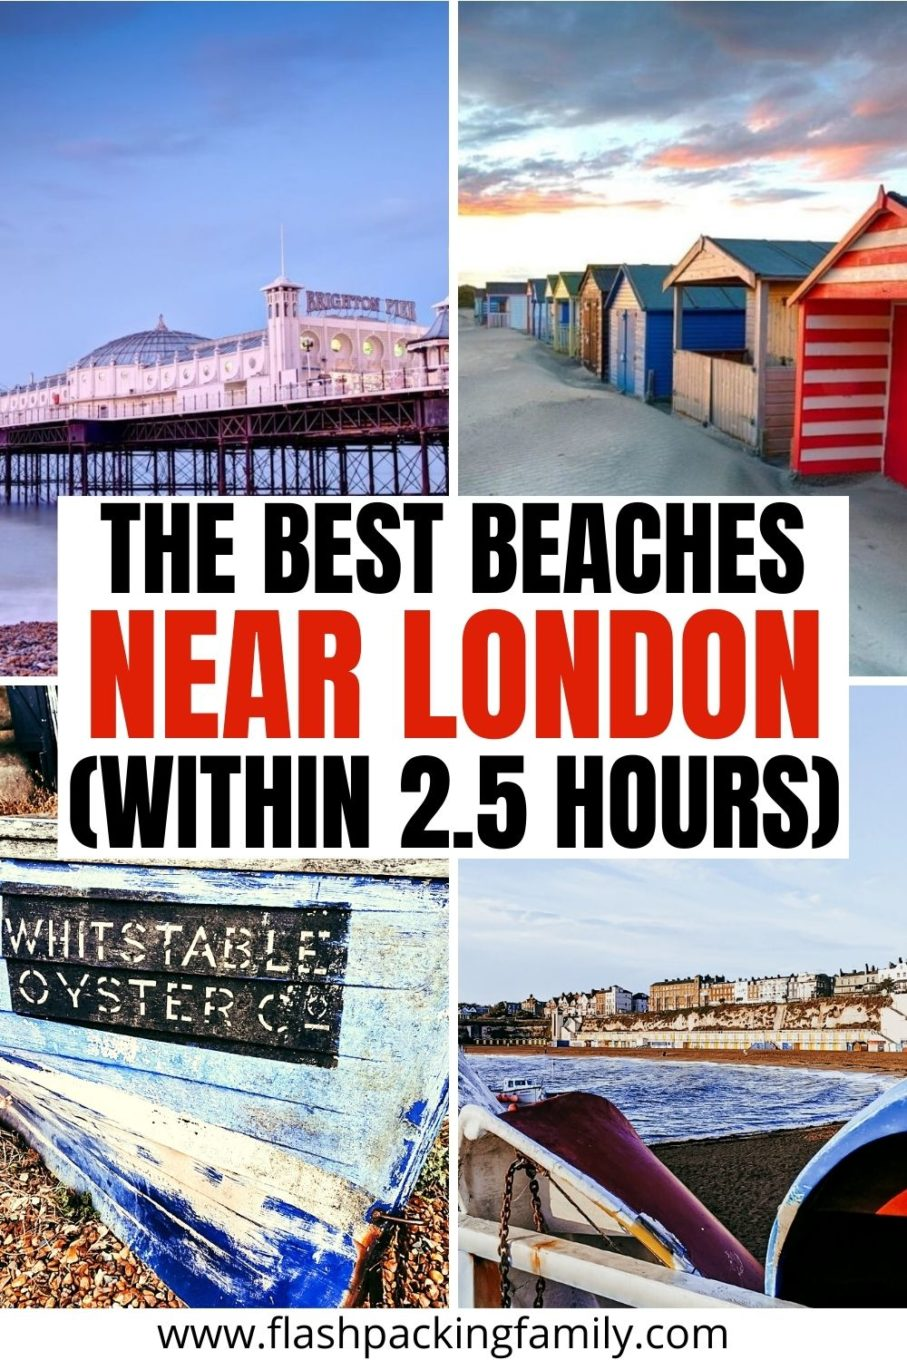 The Best Beaches Near London (Within 2.5 Hours)